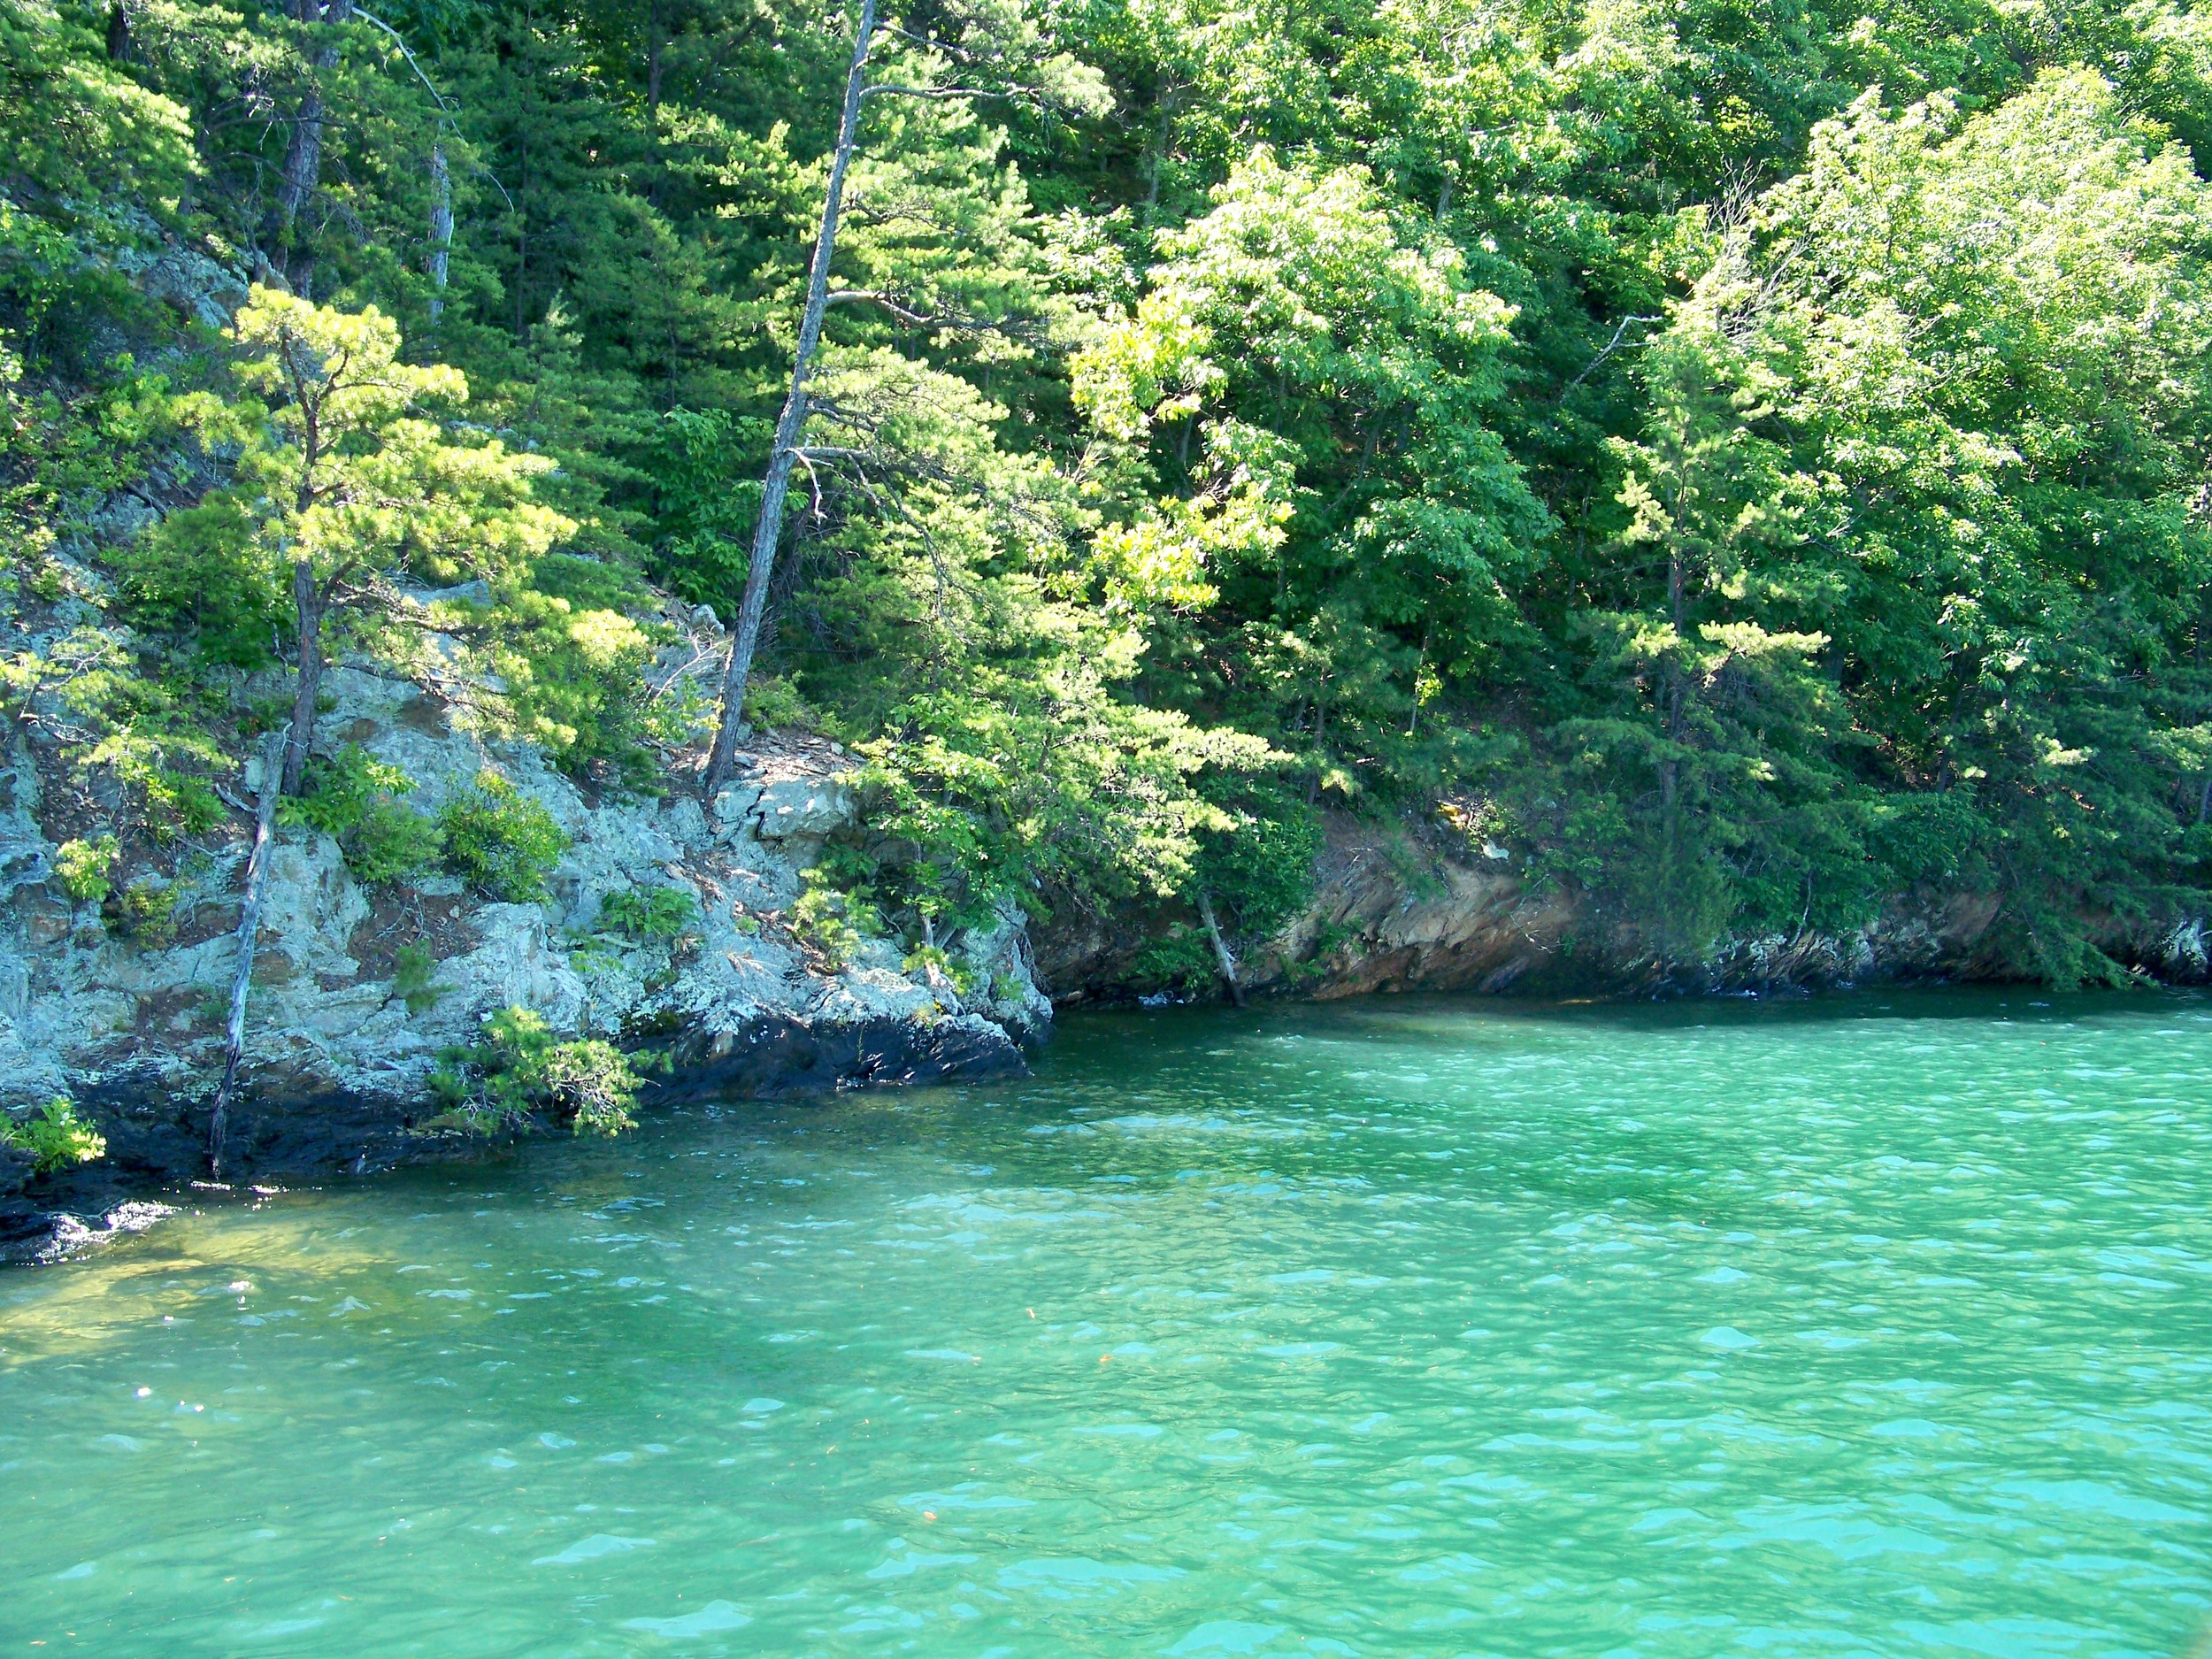 This steep shoreline with submerged boulders, overhanging tree limbs and shadows looks worthy.